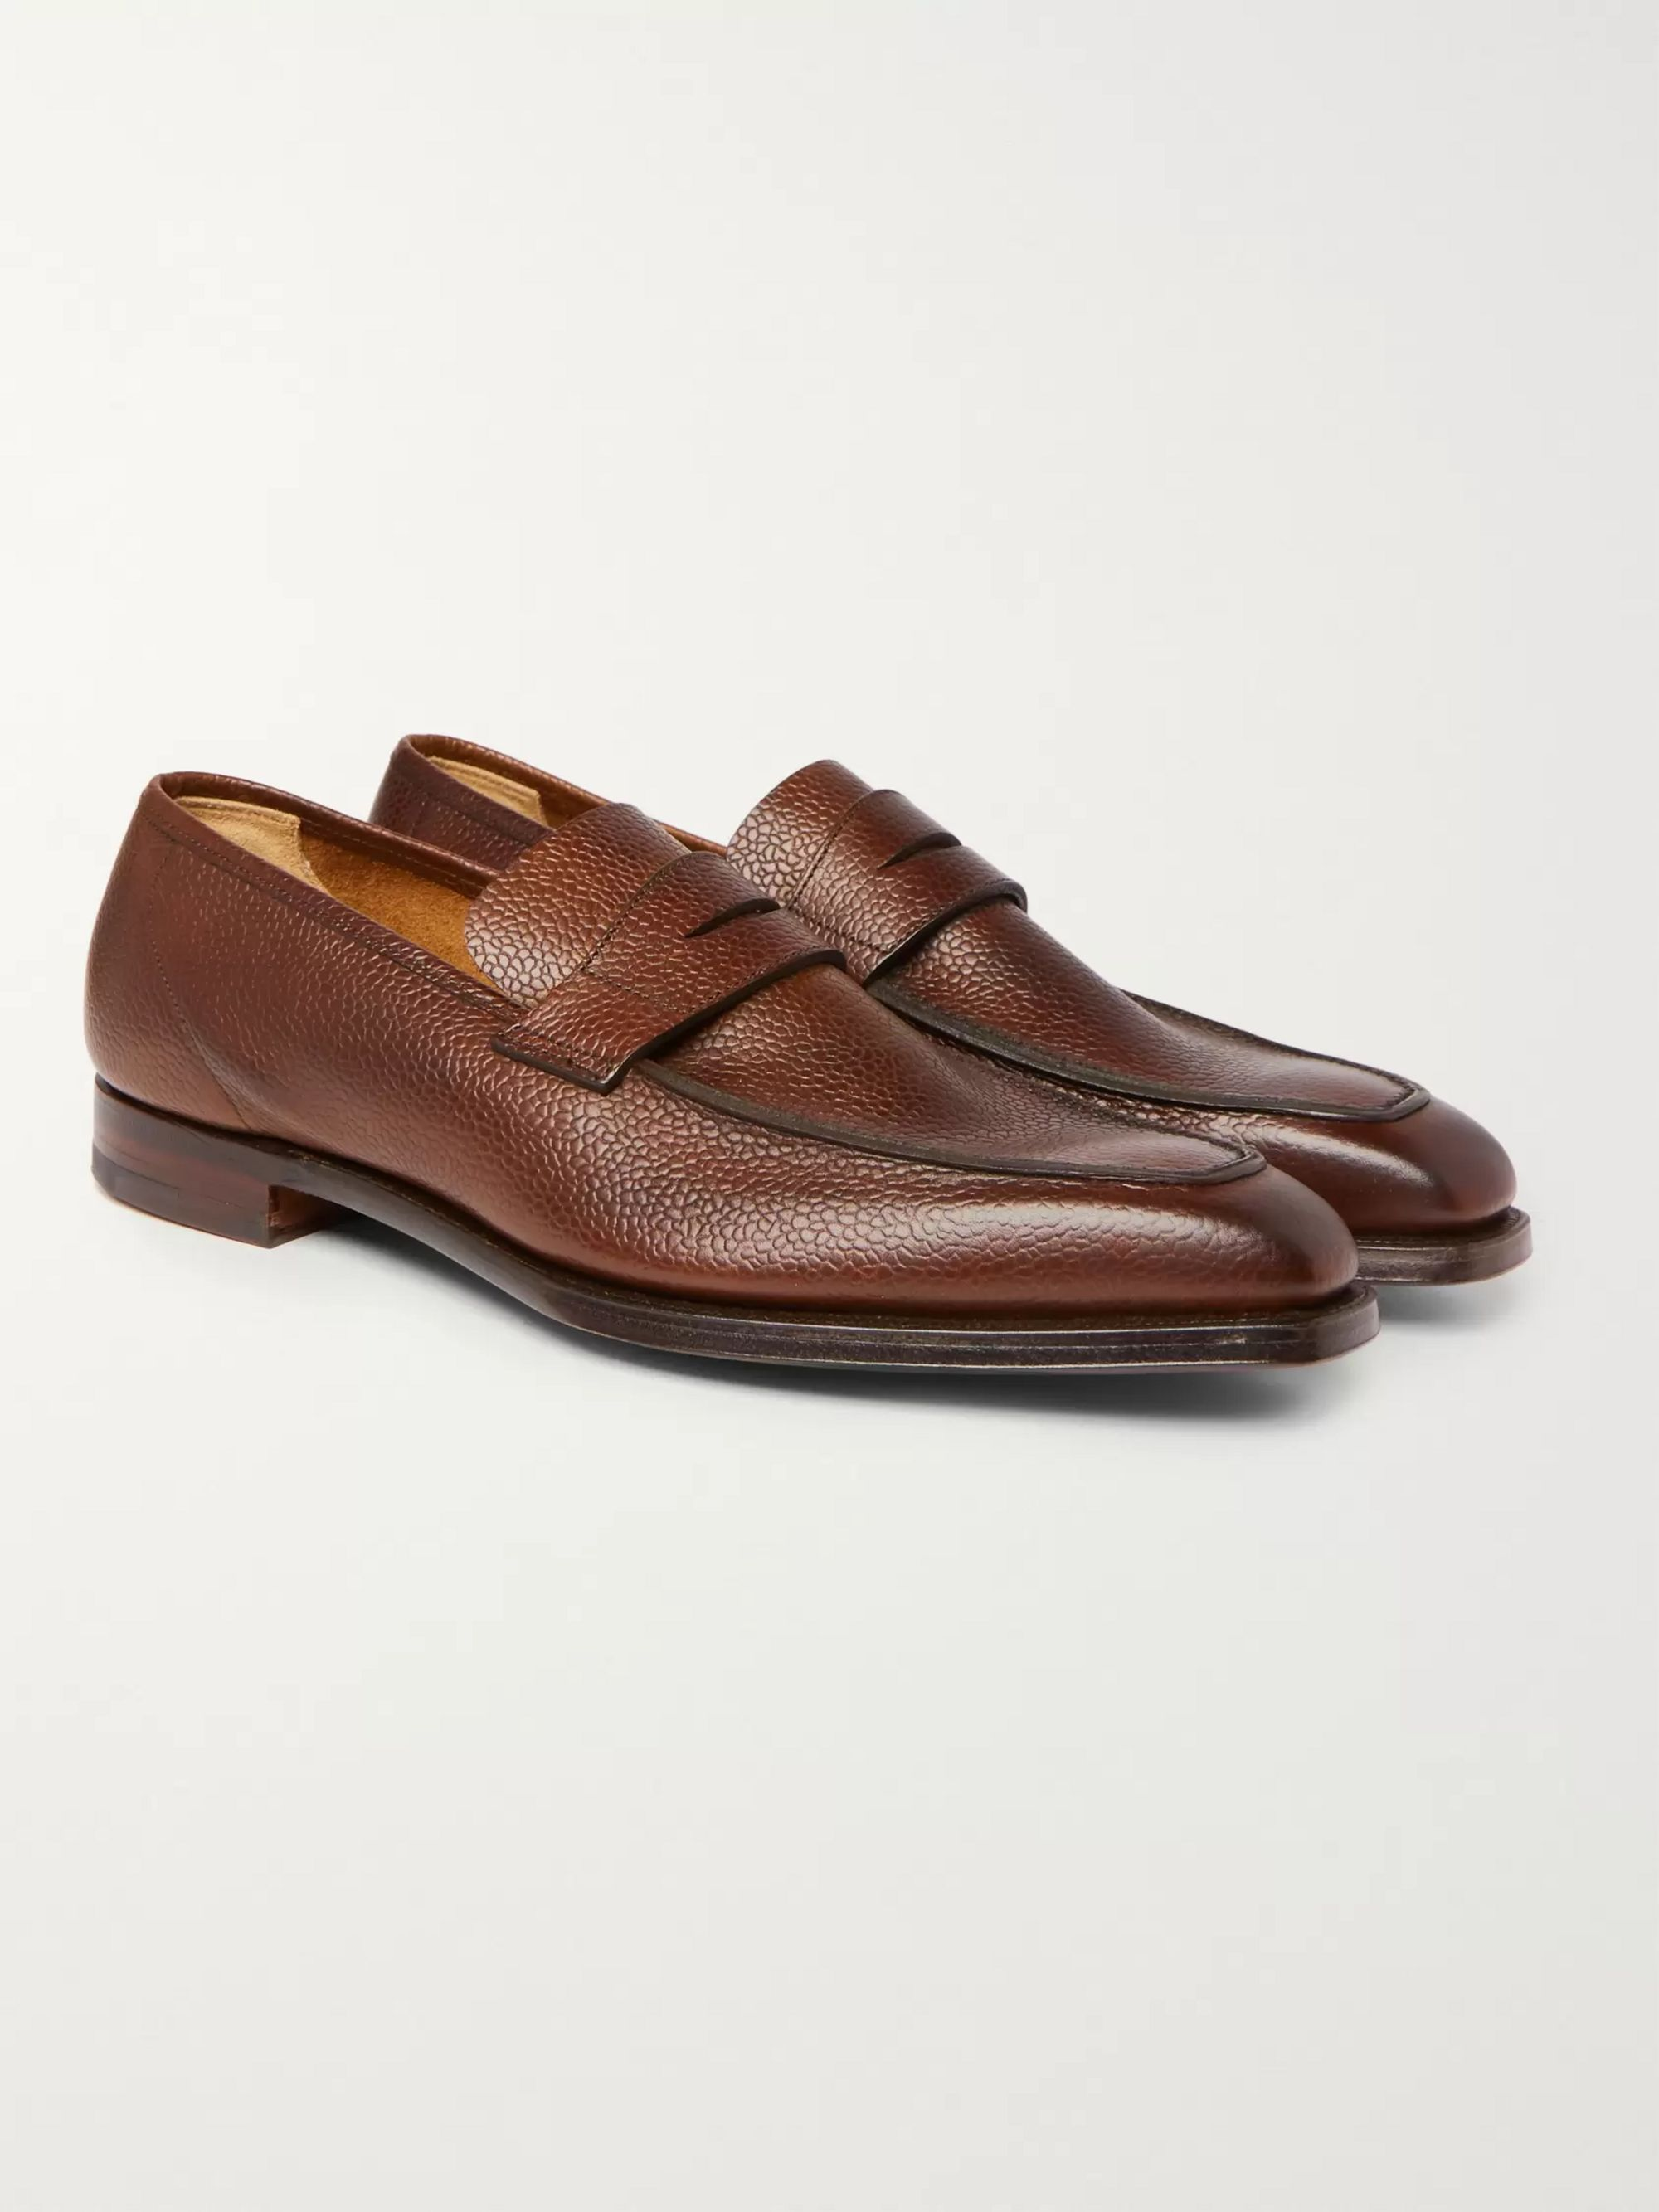 George Cleverley George Leather Penny Loafers